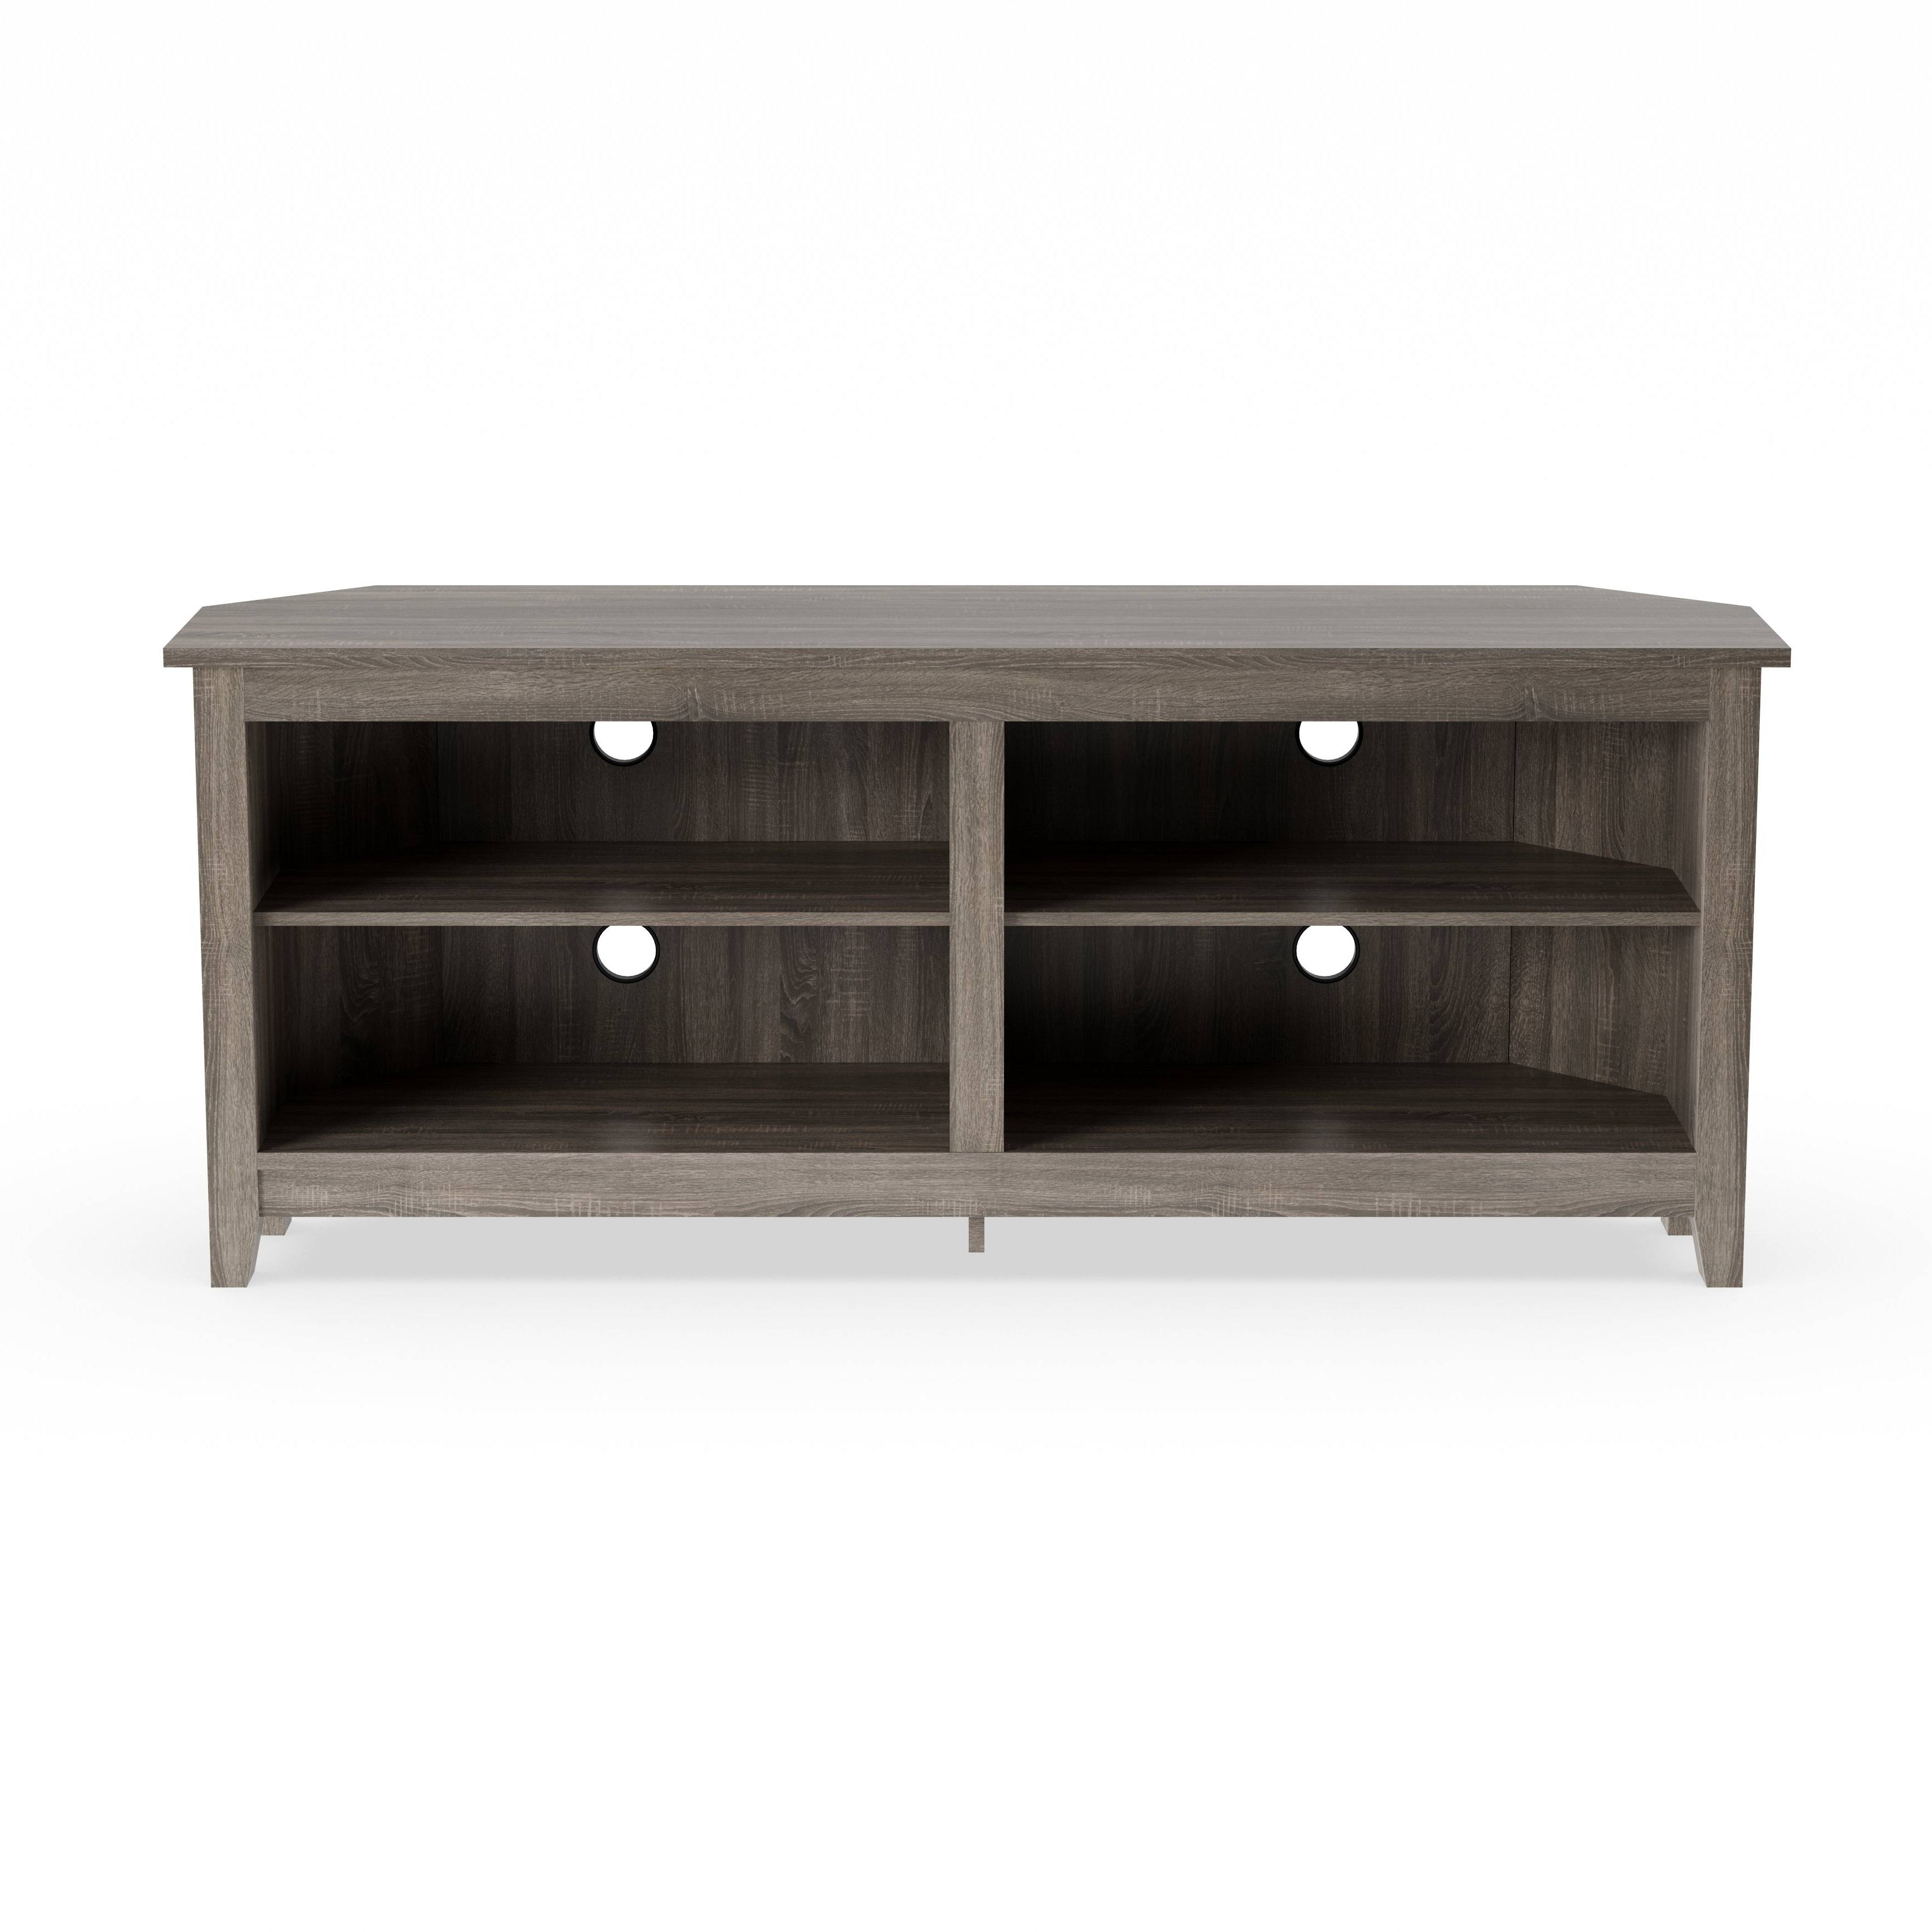 Shop Porch & Den Dexter 58 Inch Driftwood Corner Tv Stand – On Sale With Regard To Century Sky 60 Inch Tv Stands (View 16 of 20)